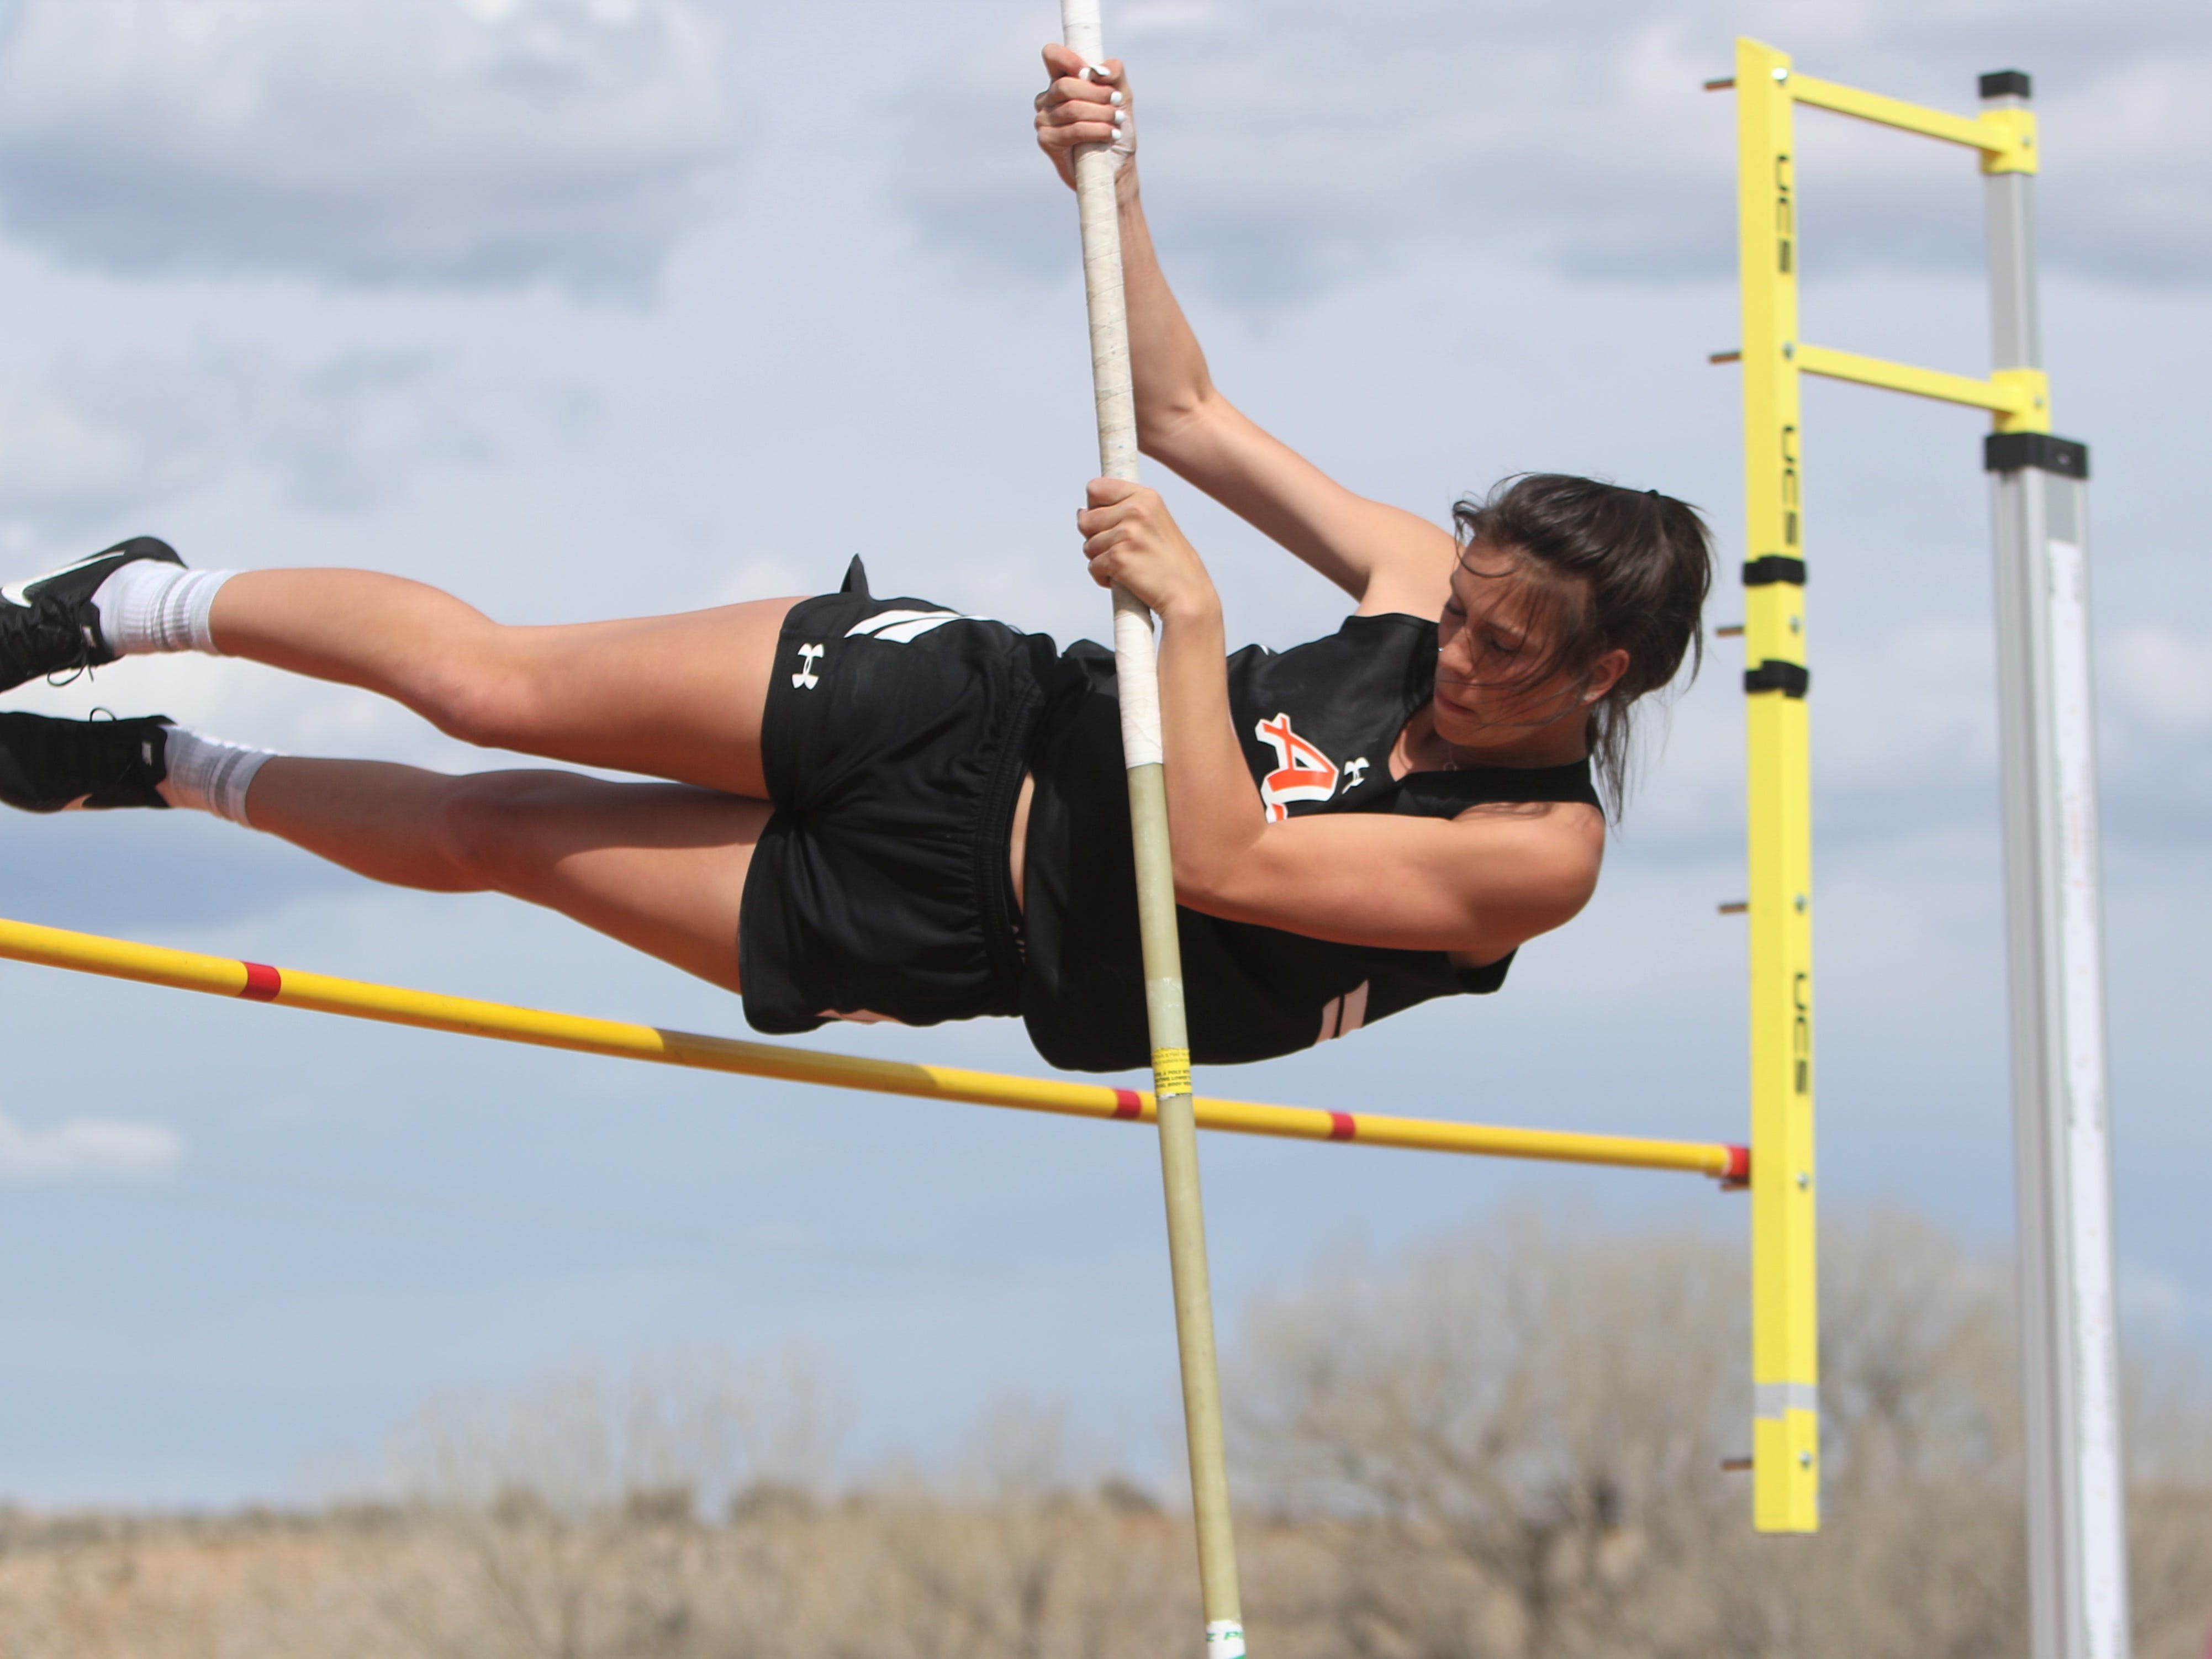 Aztec's Carley Smith successfully catapults herself over the bar in the girls pole vault during Friday's Top Gun Invitational at Aztec.